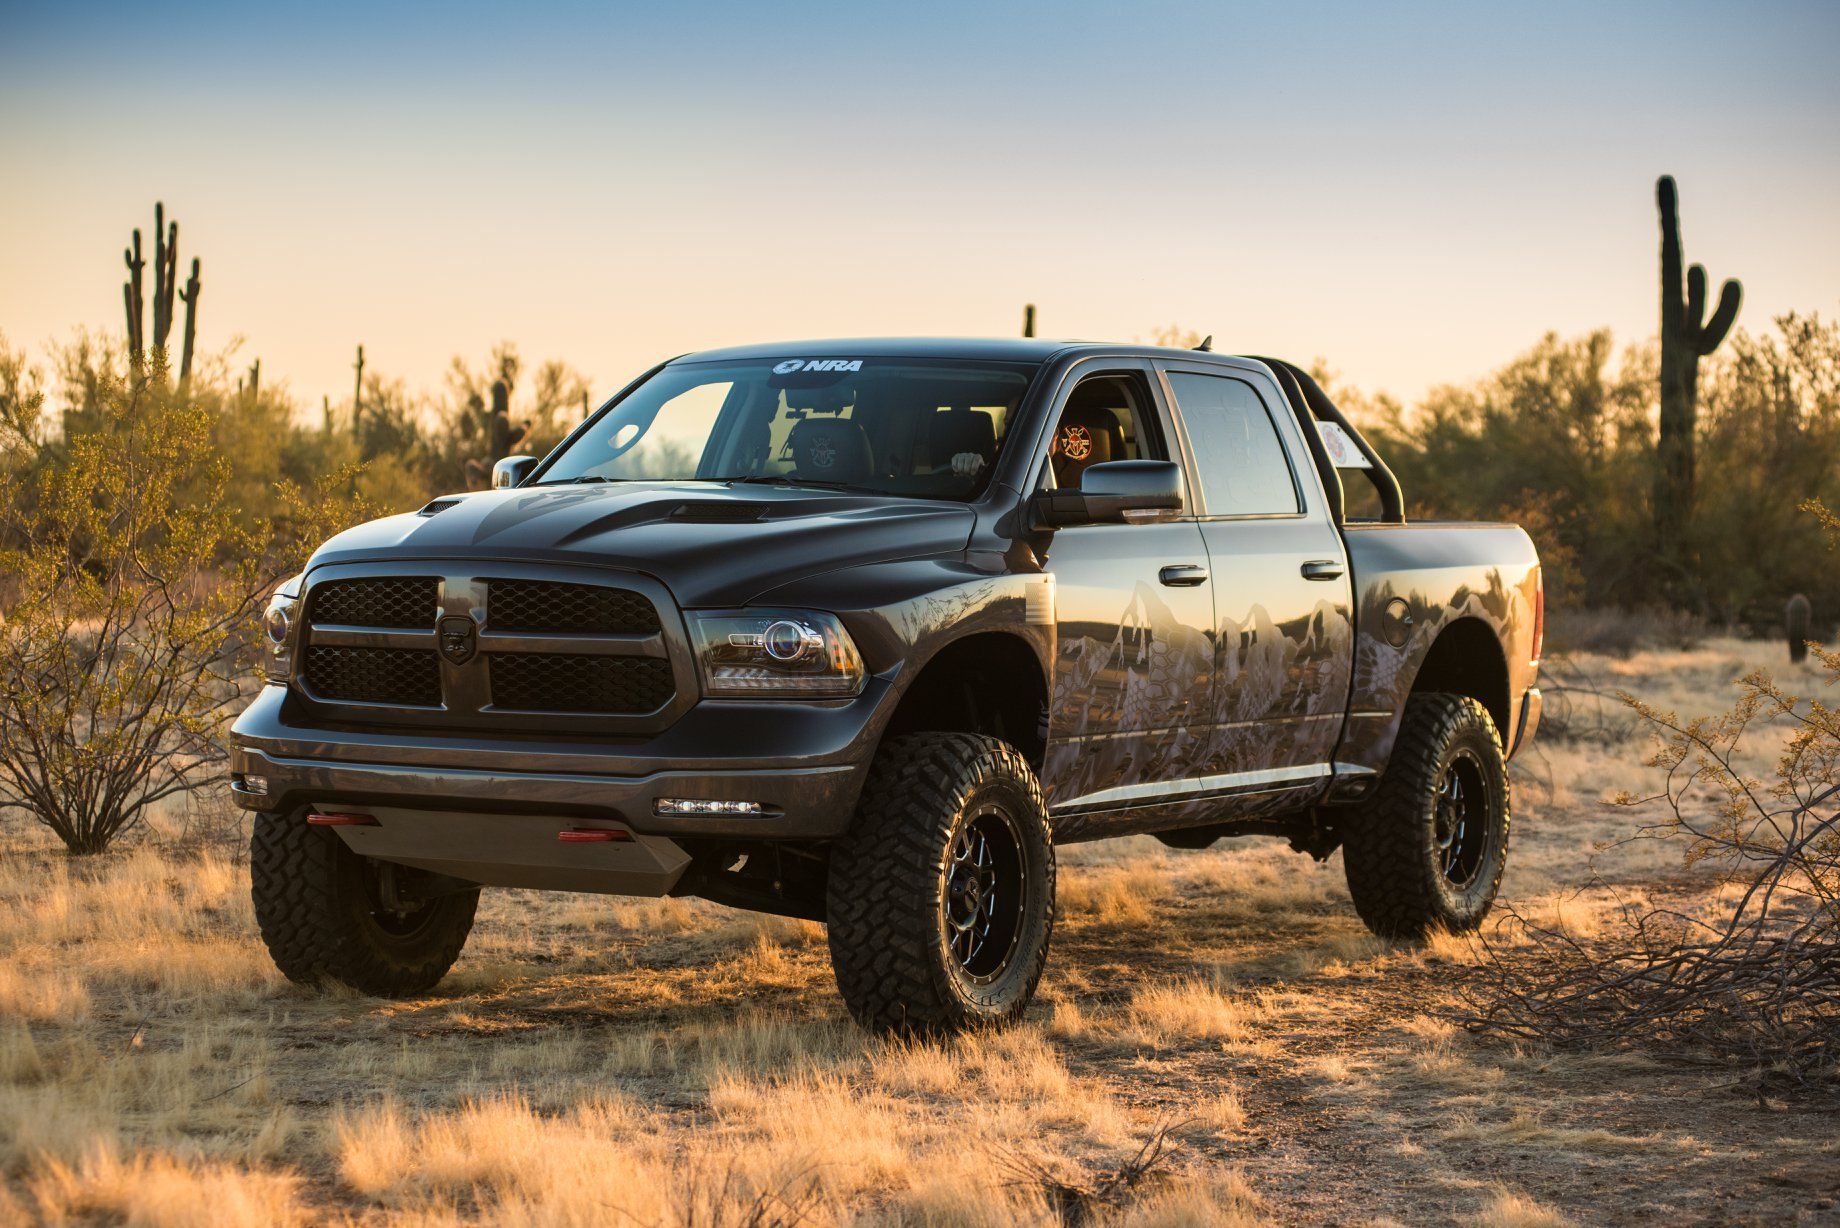 get your kore suspension at www koreraceshop com ram1500 levelingkits nra bestlevelingkitwithfourshocks [ 1840 x 1228 Pixel ]